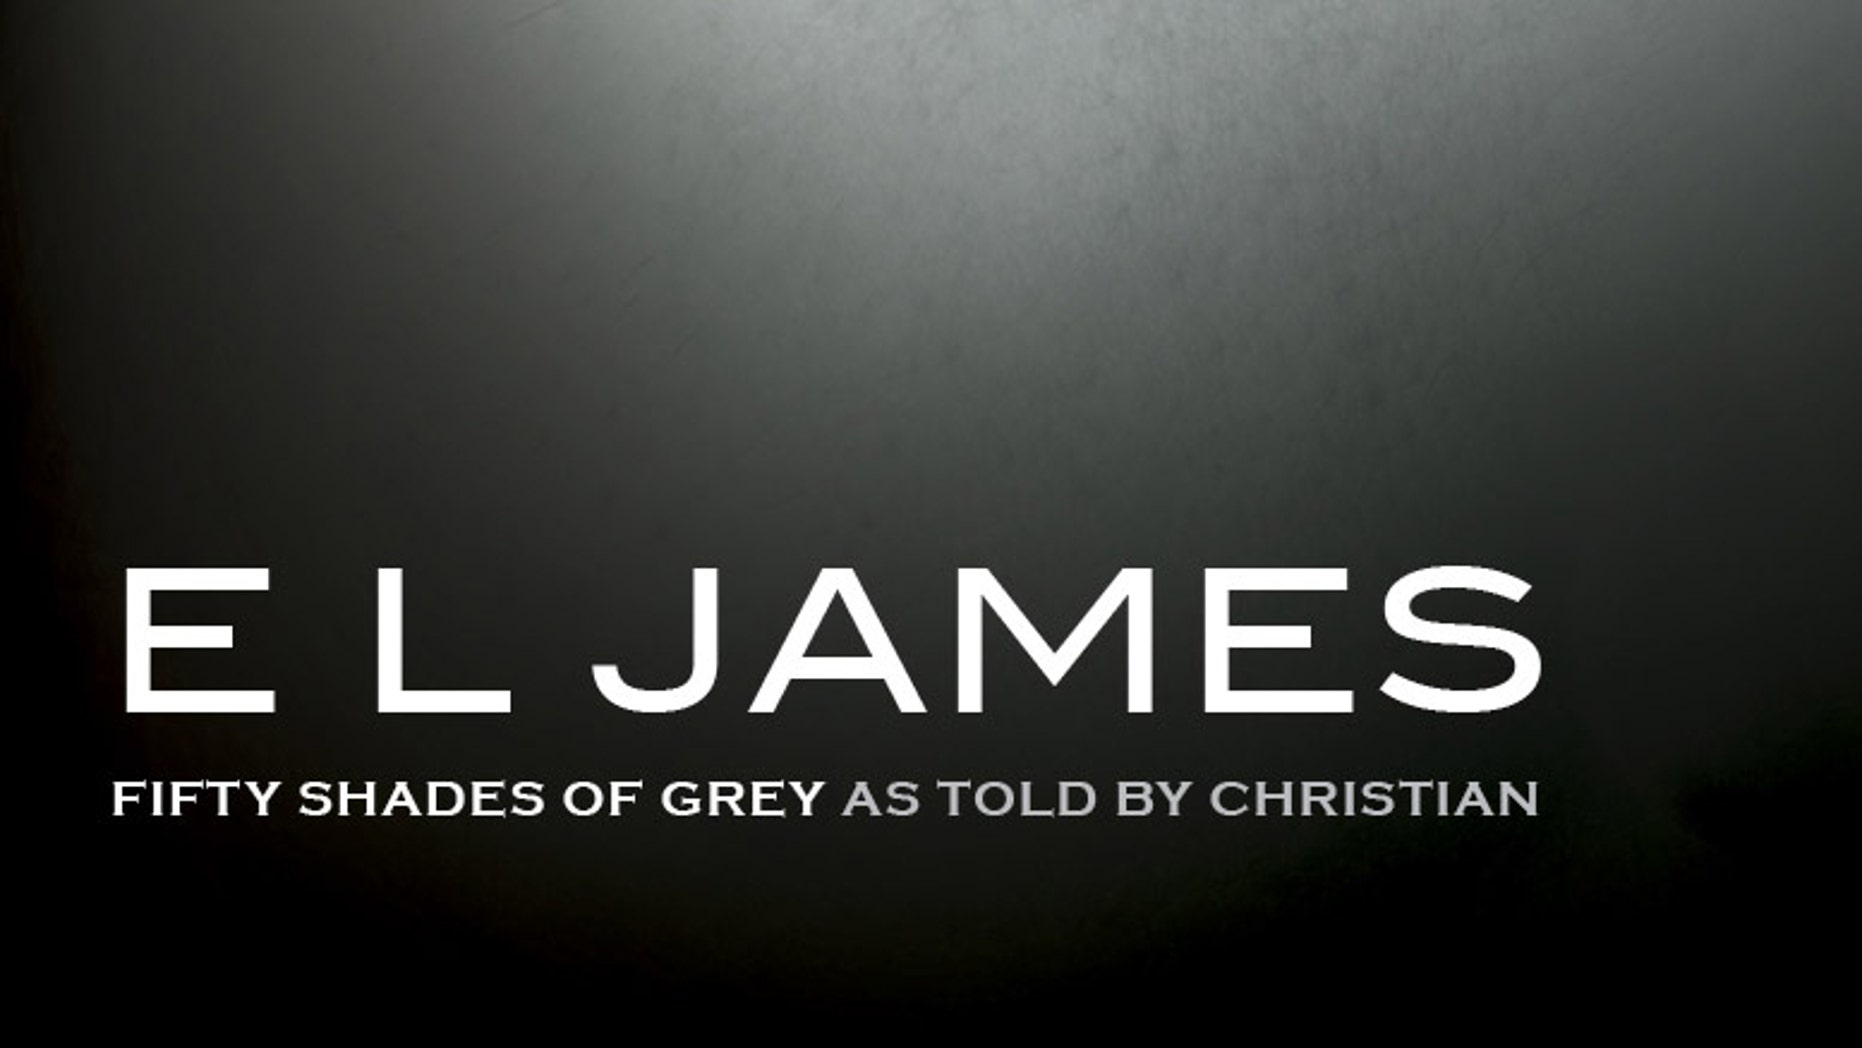 """This image provided by Vintage Books shows the cover of the new book, """"Grey,"""" the fourth novel in E L James' multimillion-selling Fifty Shades of Grey erotic series. Told from the point of view of billionaire Christian Grey, whose explicit romance with young Anastasia Steele became an international obsession, the book is scheduled to be released June 18, 2015. (Vintage Books via AP)"""